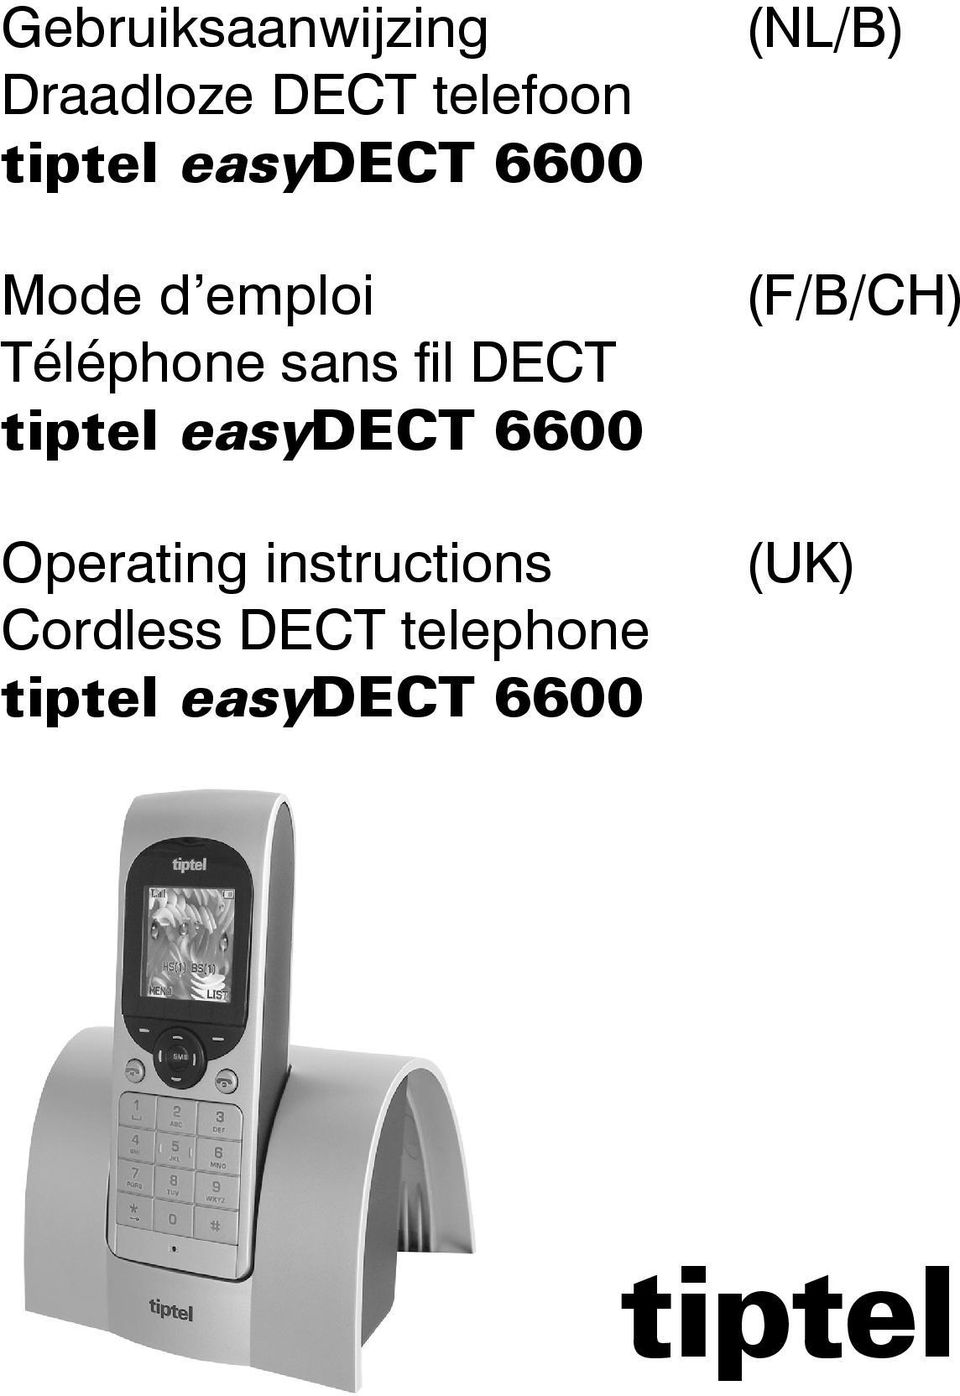 tiptel easydect 6600 Operating instructions Cordless